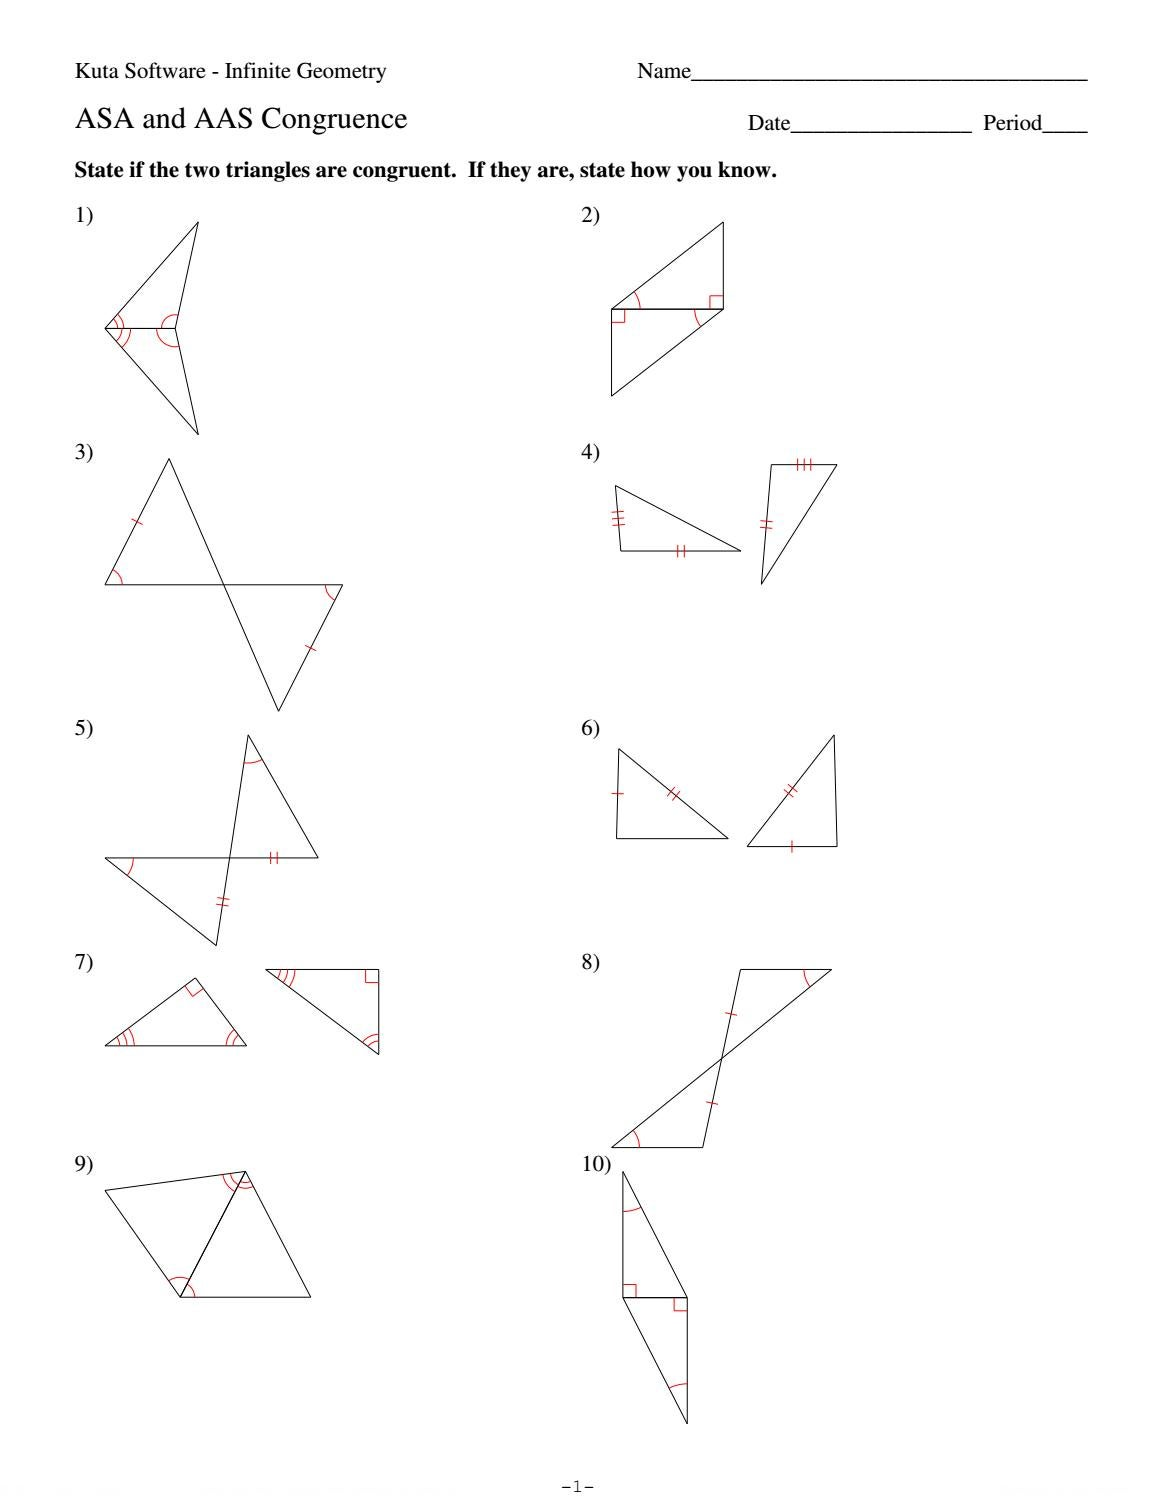 24 asa and aas congruence by HHS Geometry - issuu With Congruent Triangles Worksheet With Answer